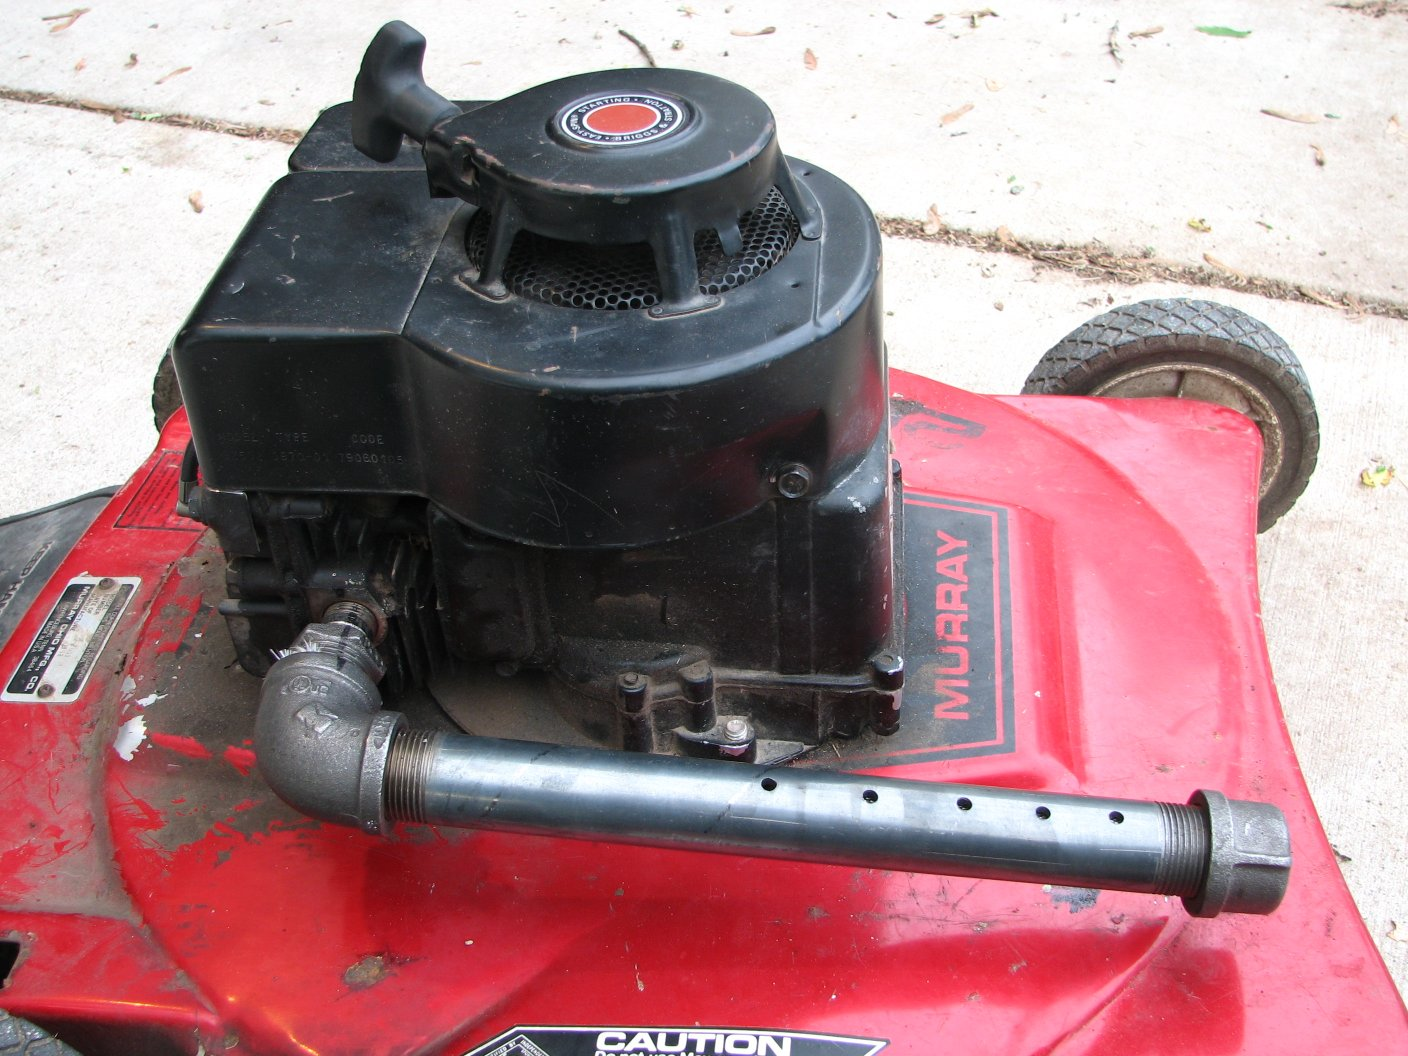 homemade exhaust for your old lawnmower